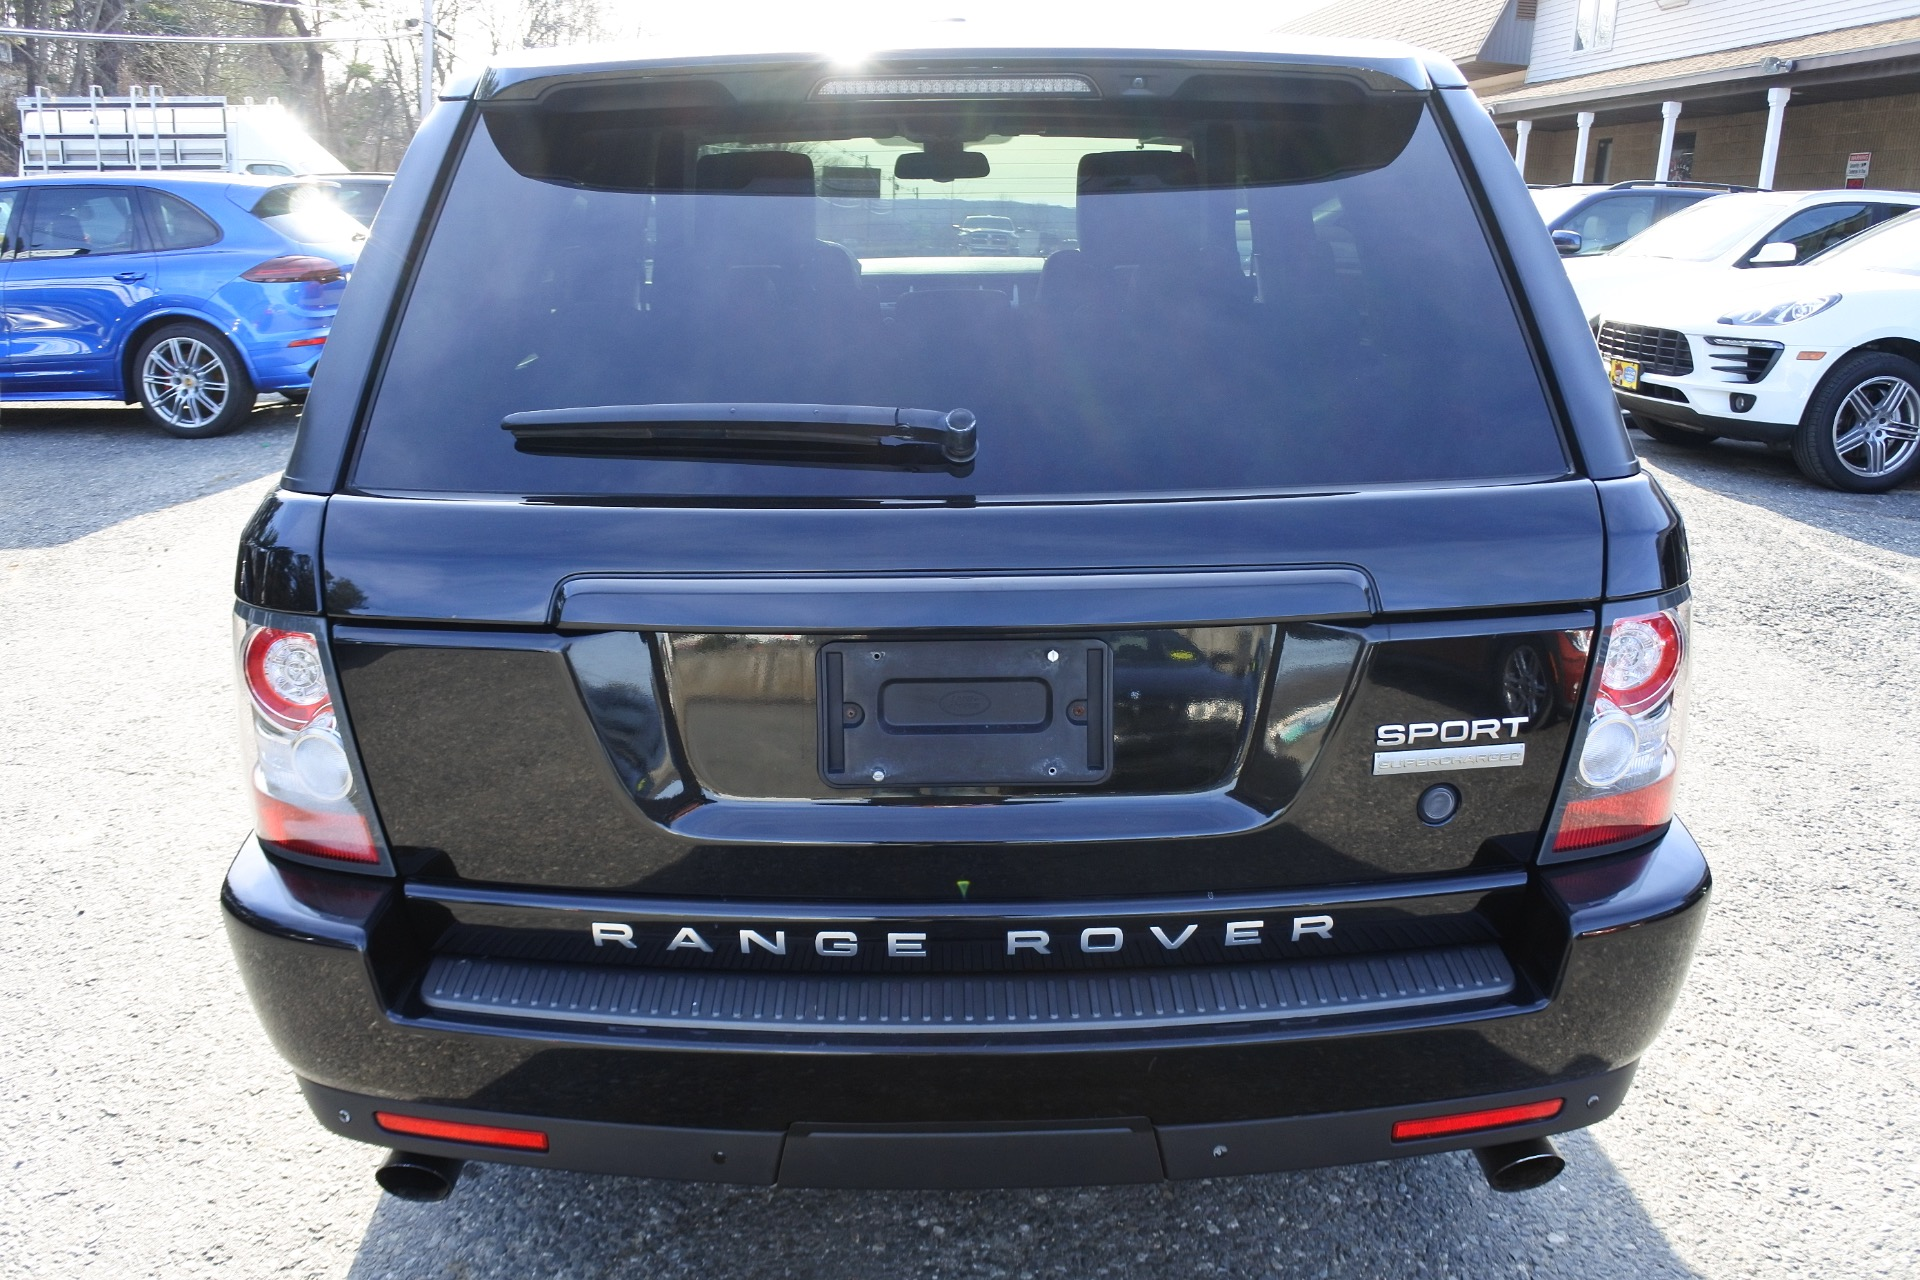 Used 2010 Land Rover Range Rover Sport Supercharged Used 2010 Land Rover Range Rover Sport Supercharged for sale  at Metro West Motorcars LLC in Shrewsbury MA 4